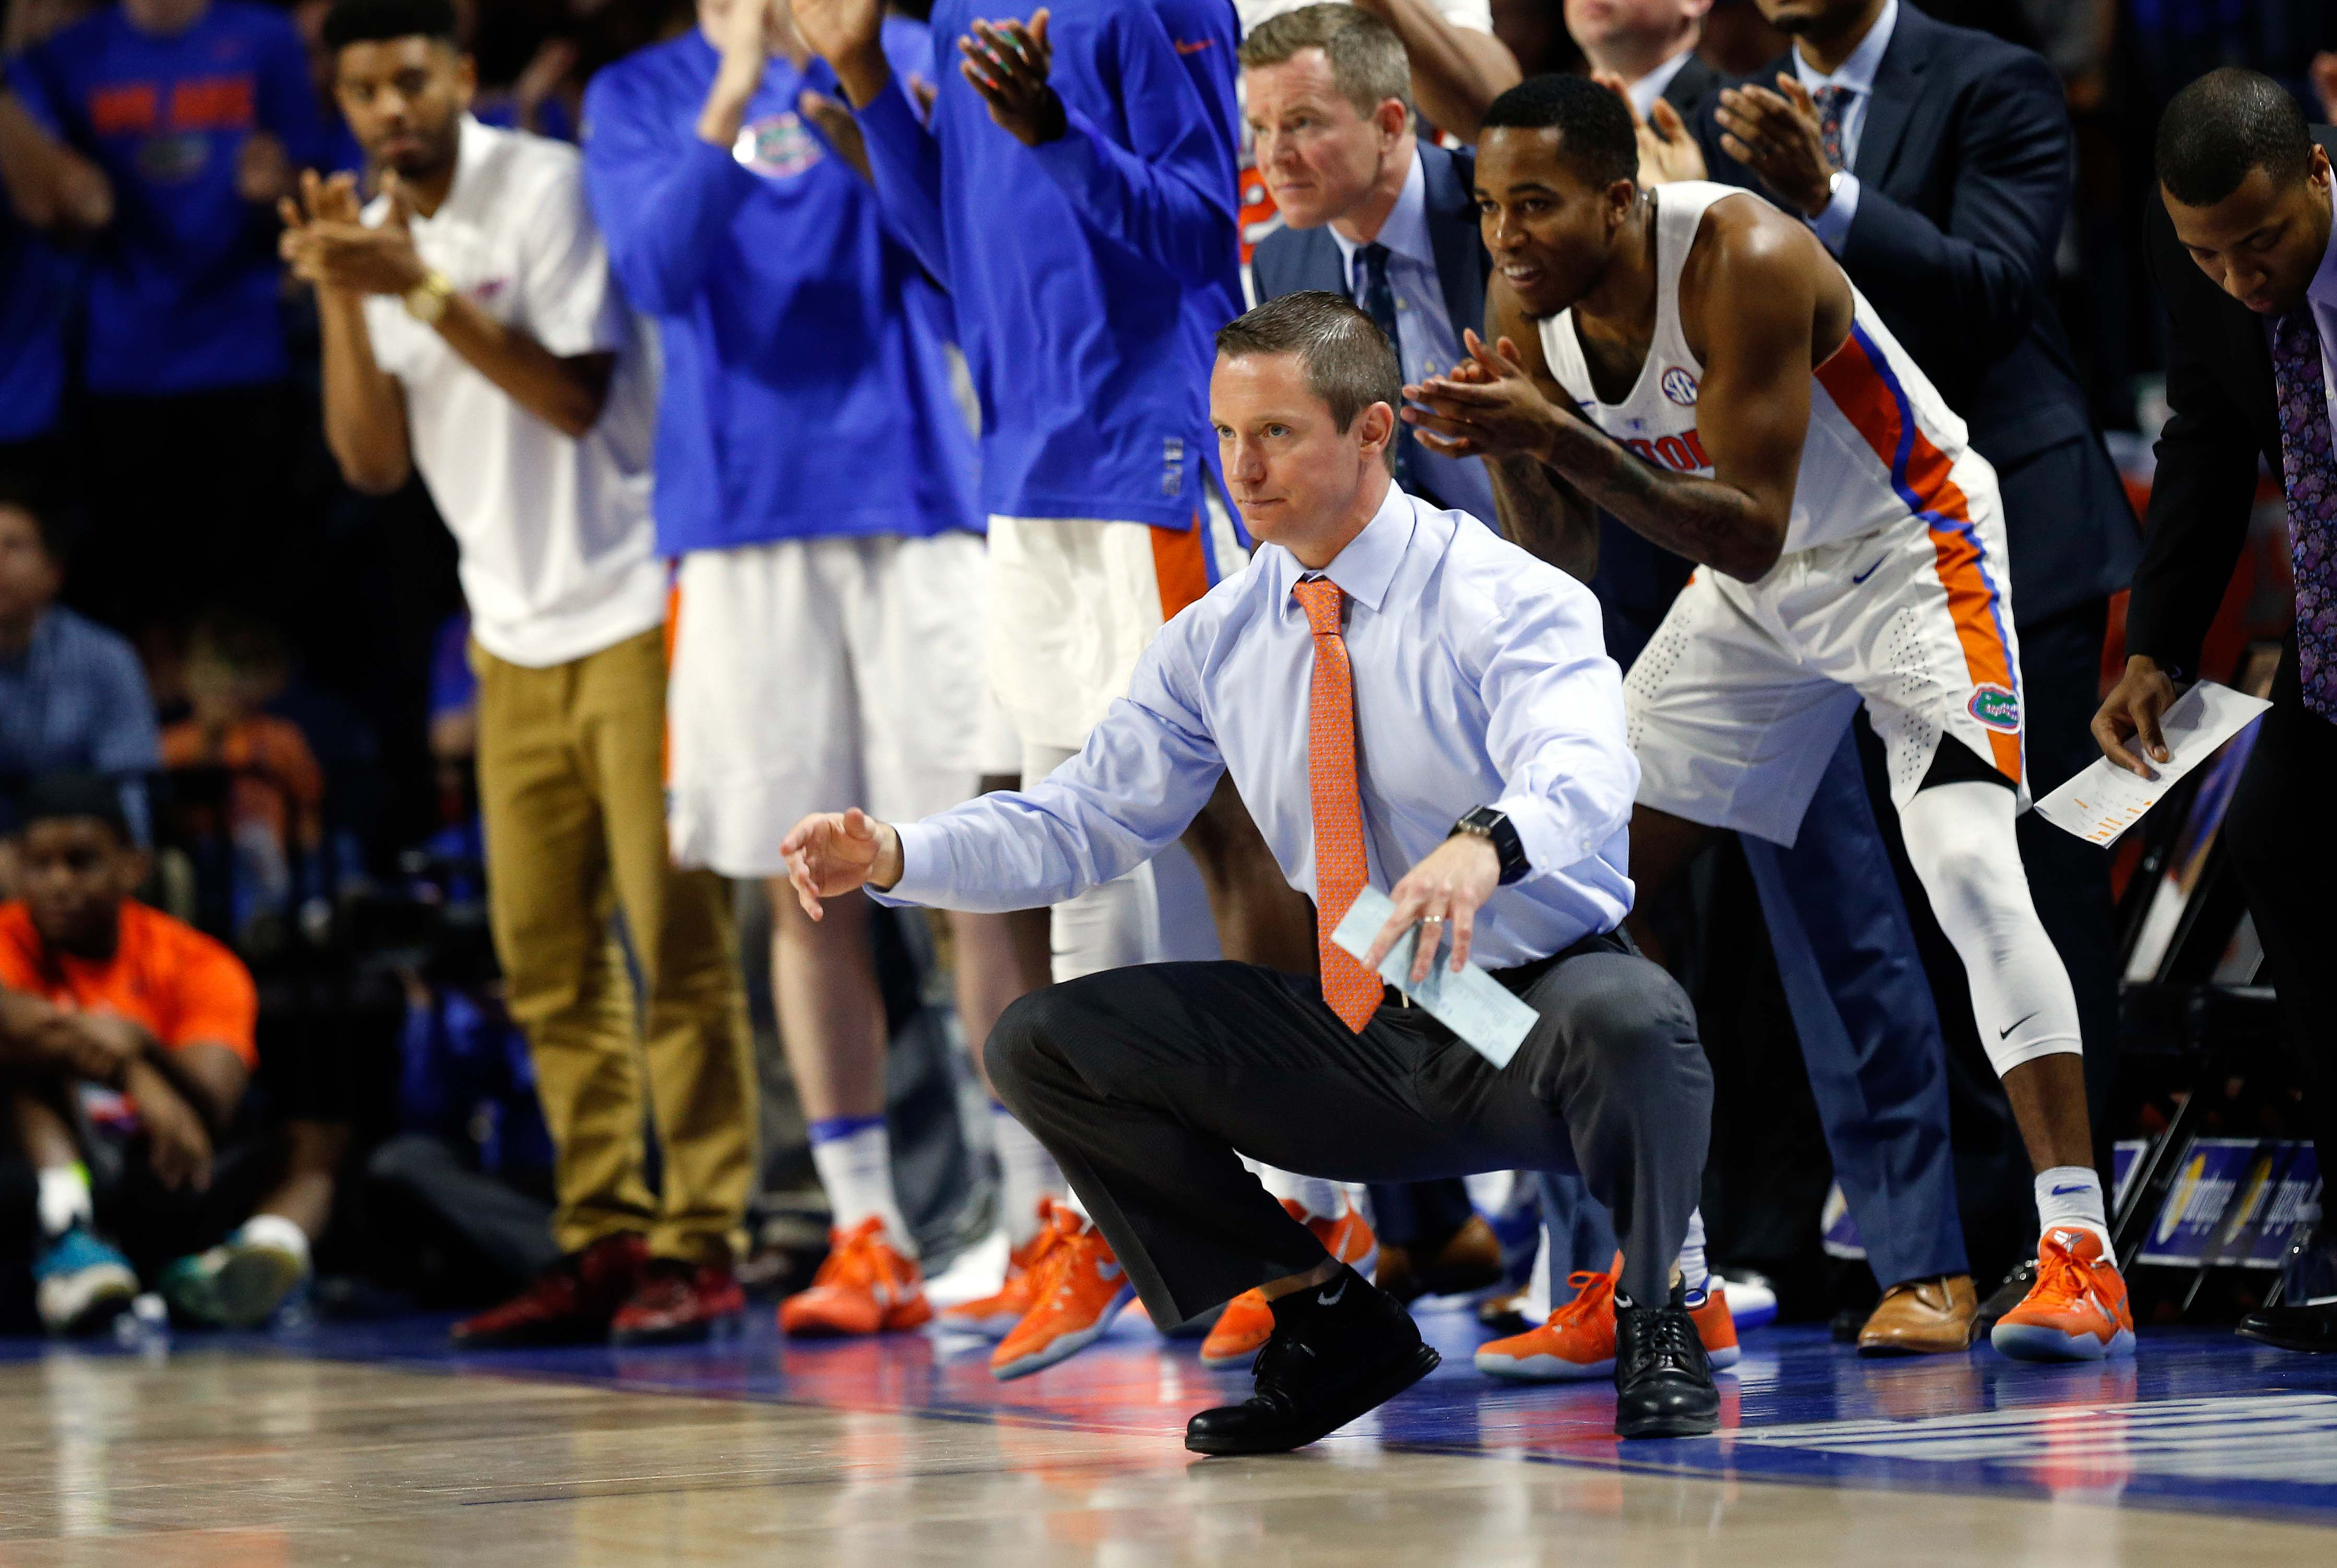 Kentucky Basketball What The Florida Win Means To The: Kentucky 76, Florida 66: Gators' Win Streak Ends In Malik